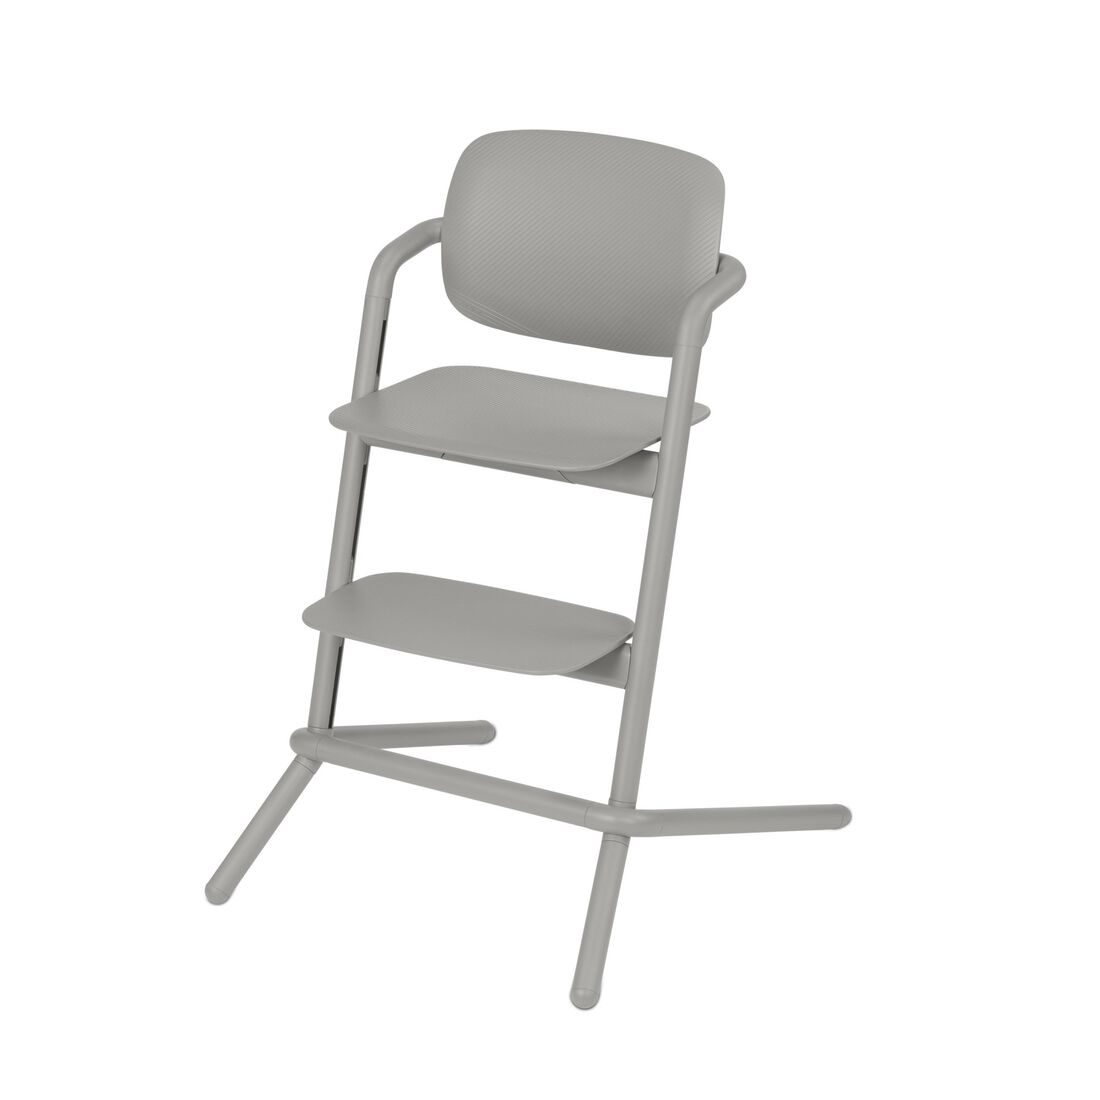 CYBEX Lemo Chair - Storm Grey (Plastic) in Storm Grey (Plastic) large image number 1